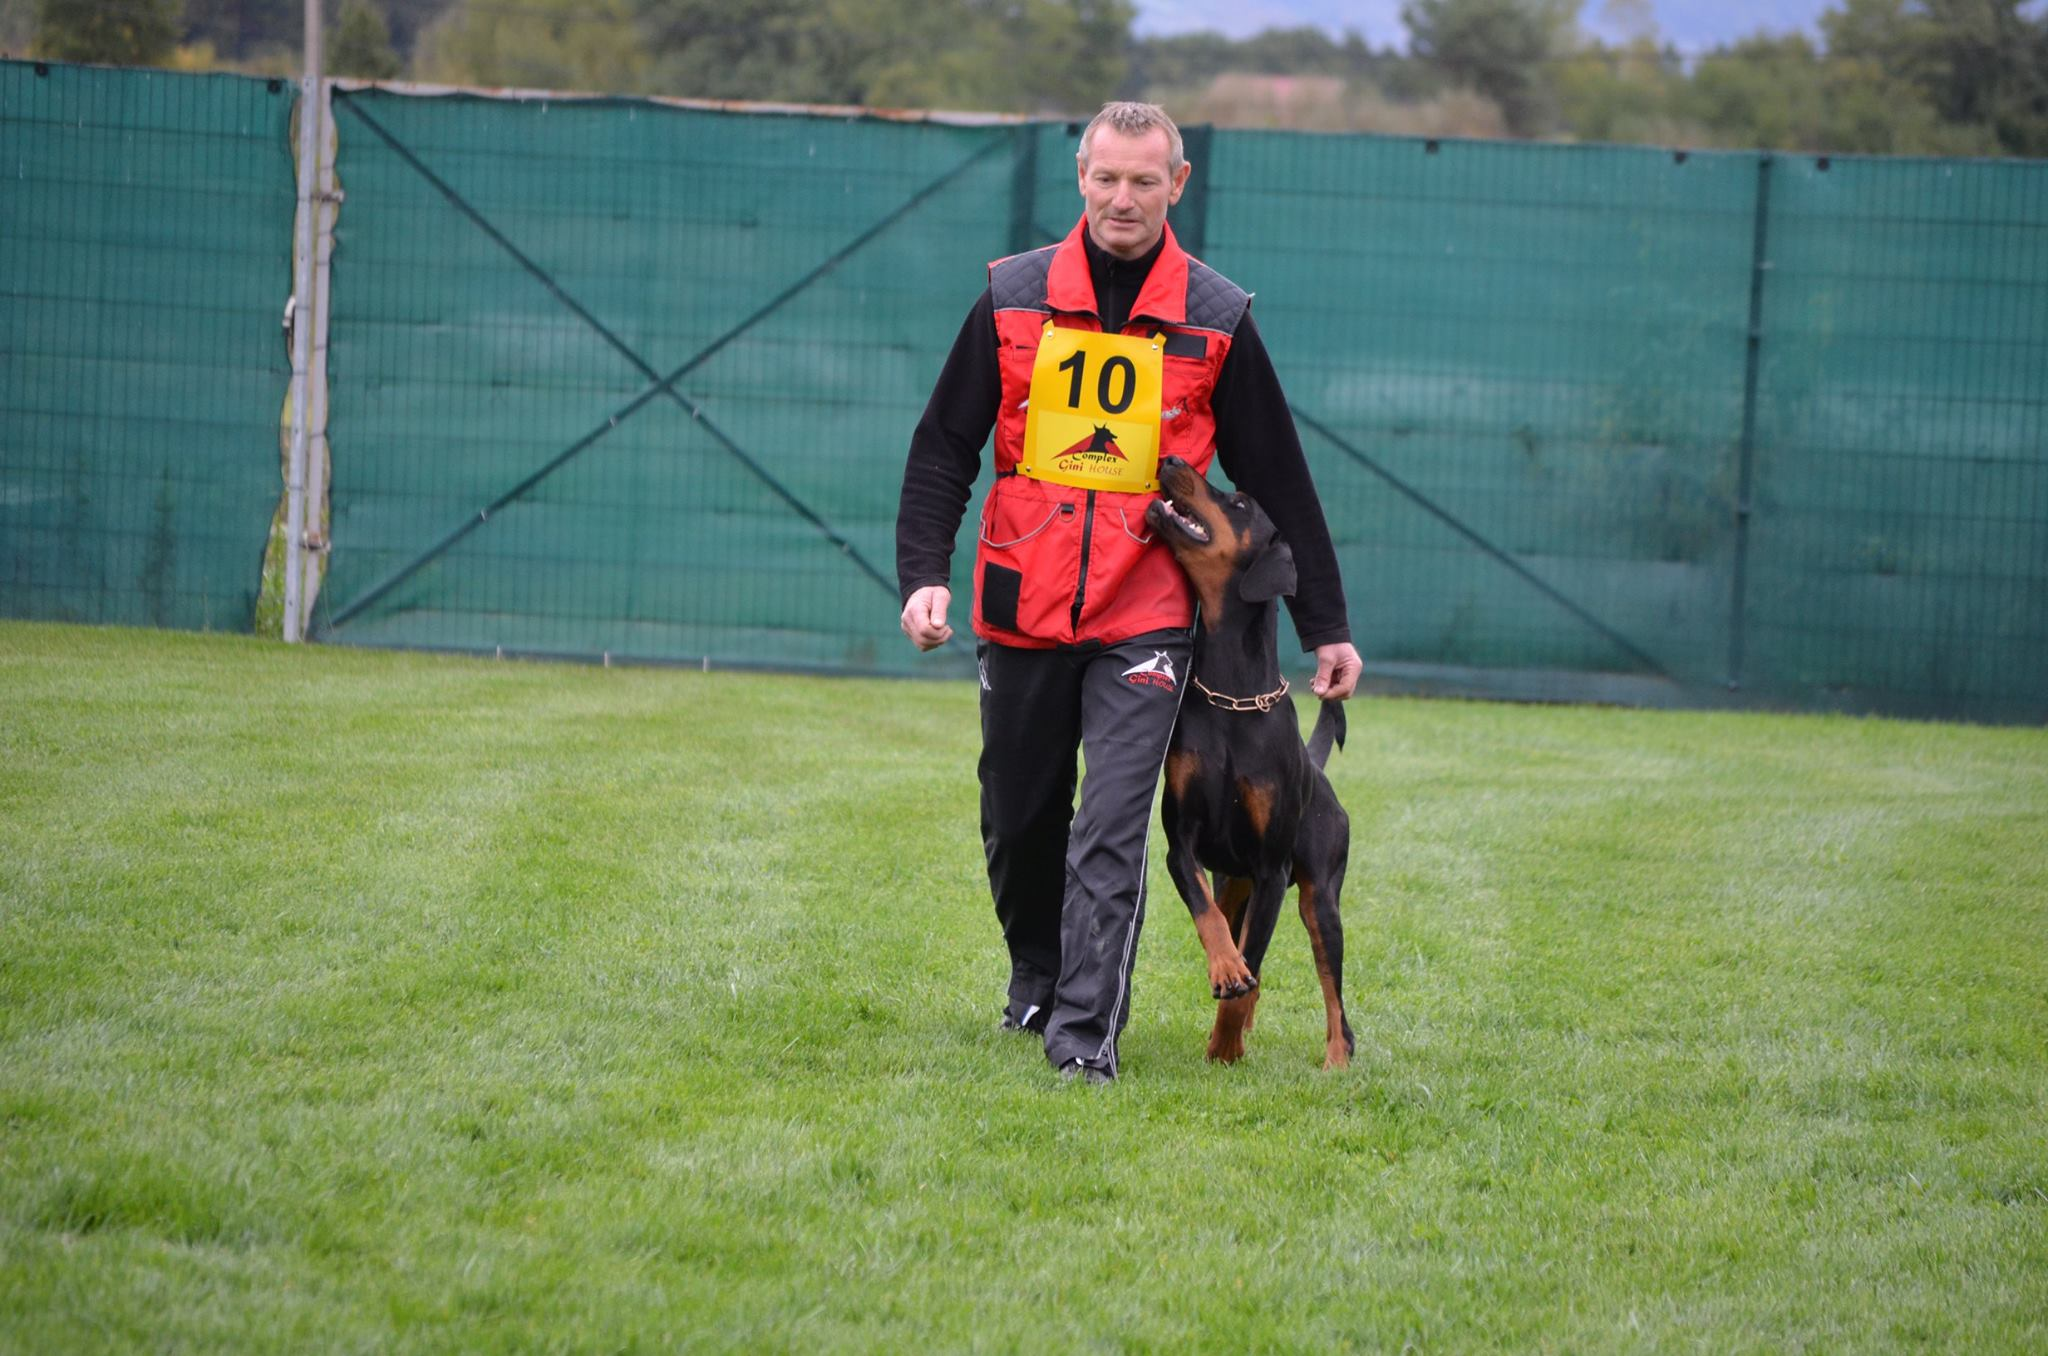 07 - Gamon Von Gini House-IPO 1, IPO 1 Winner,A 89, B 88,C 96, IPO1 Dobermann Winner, Part C Winner, part A 3-rd place, part B 2-nd place, part A,B,C Dobermann Winner